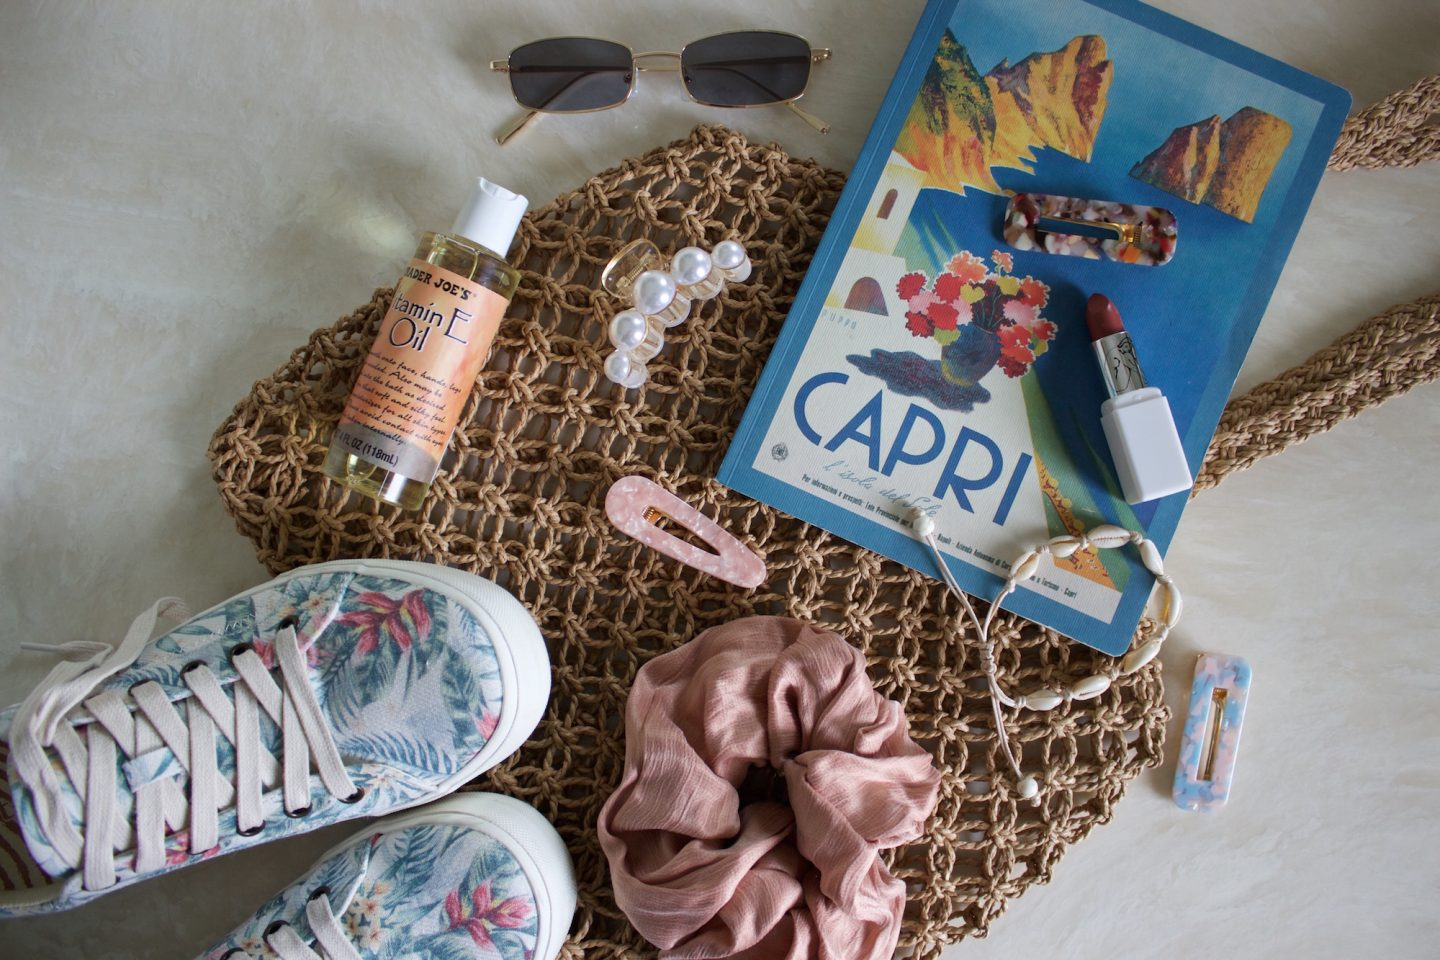 My Summer Beauty + Accessories Picks